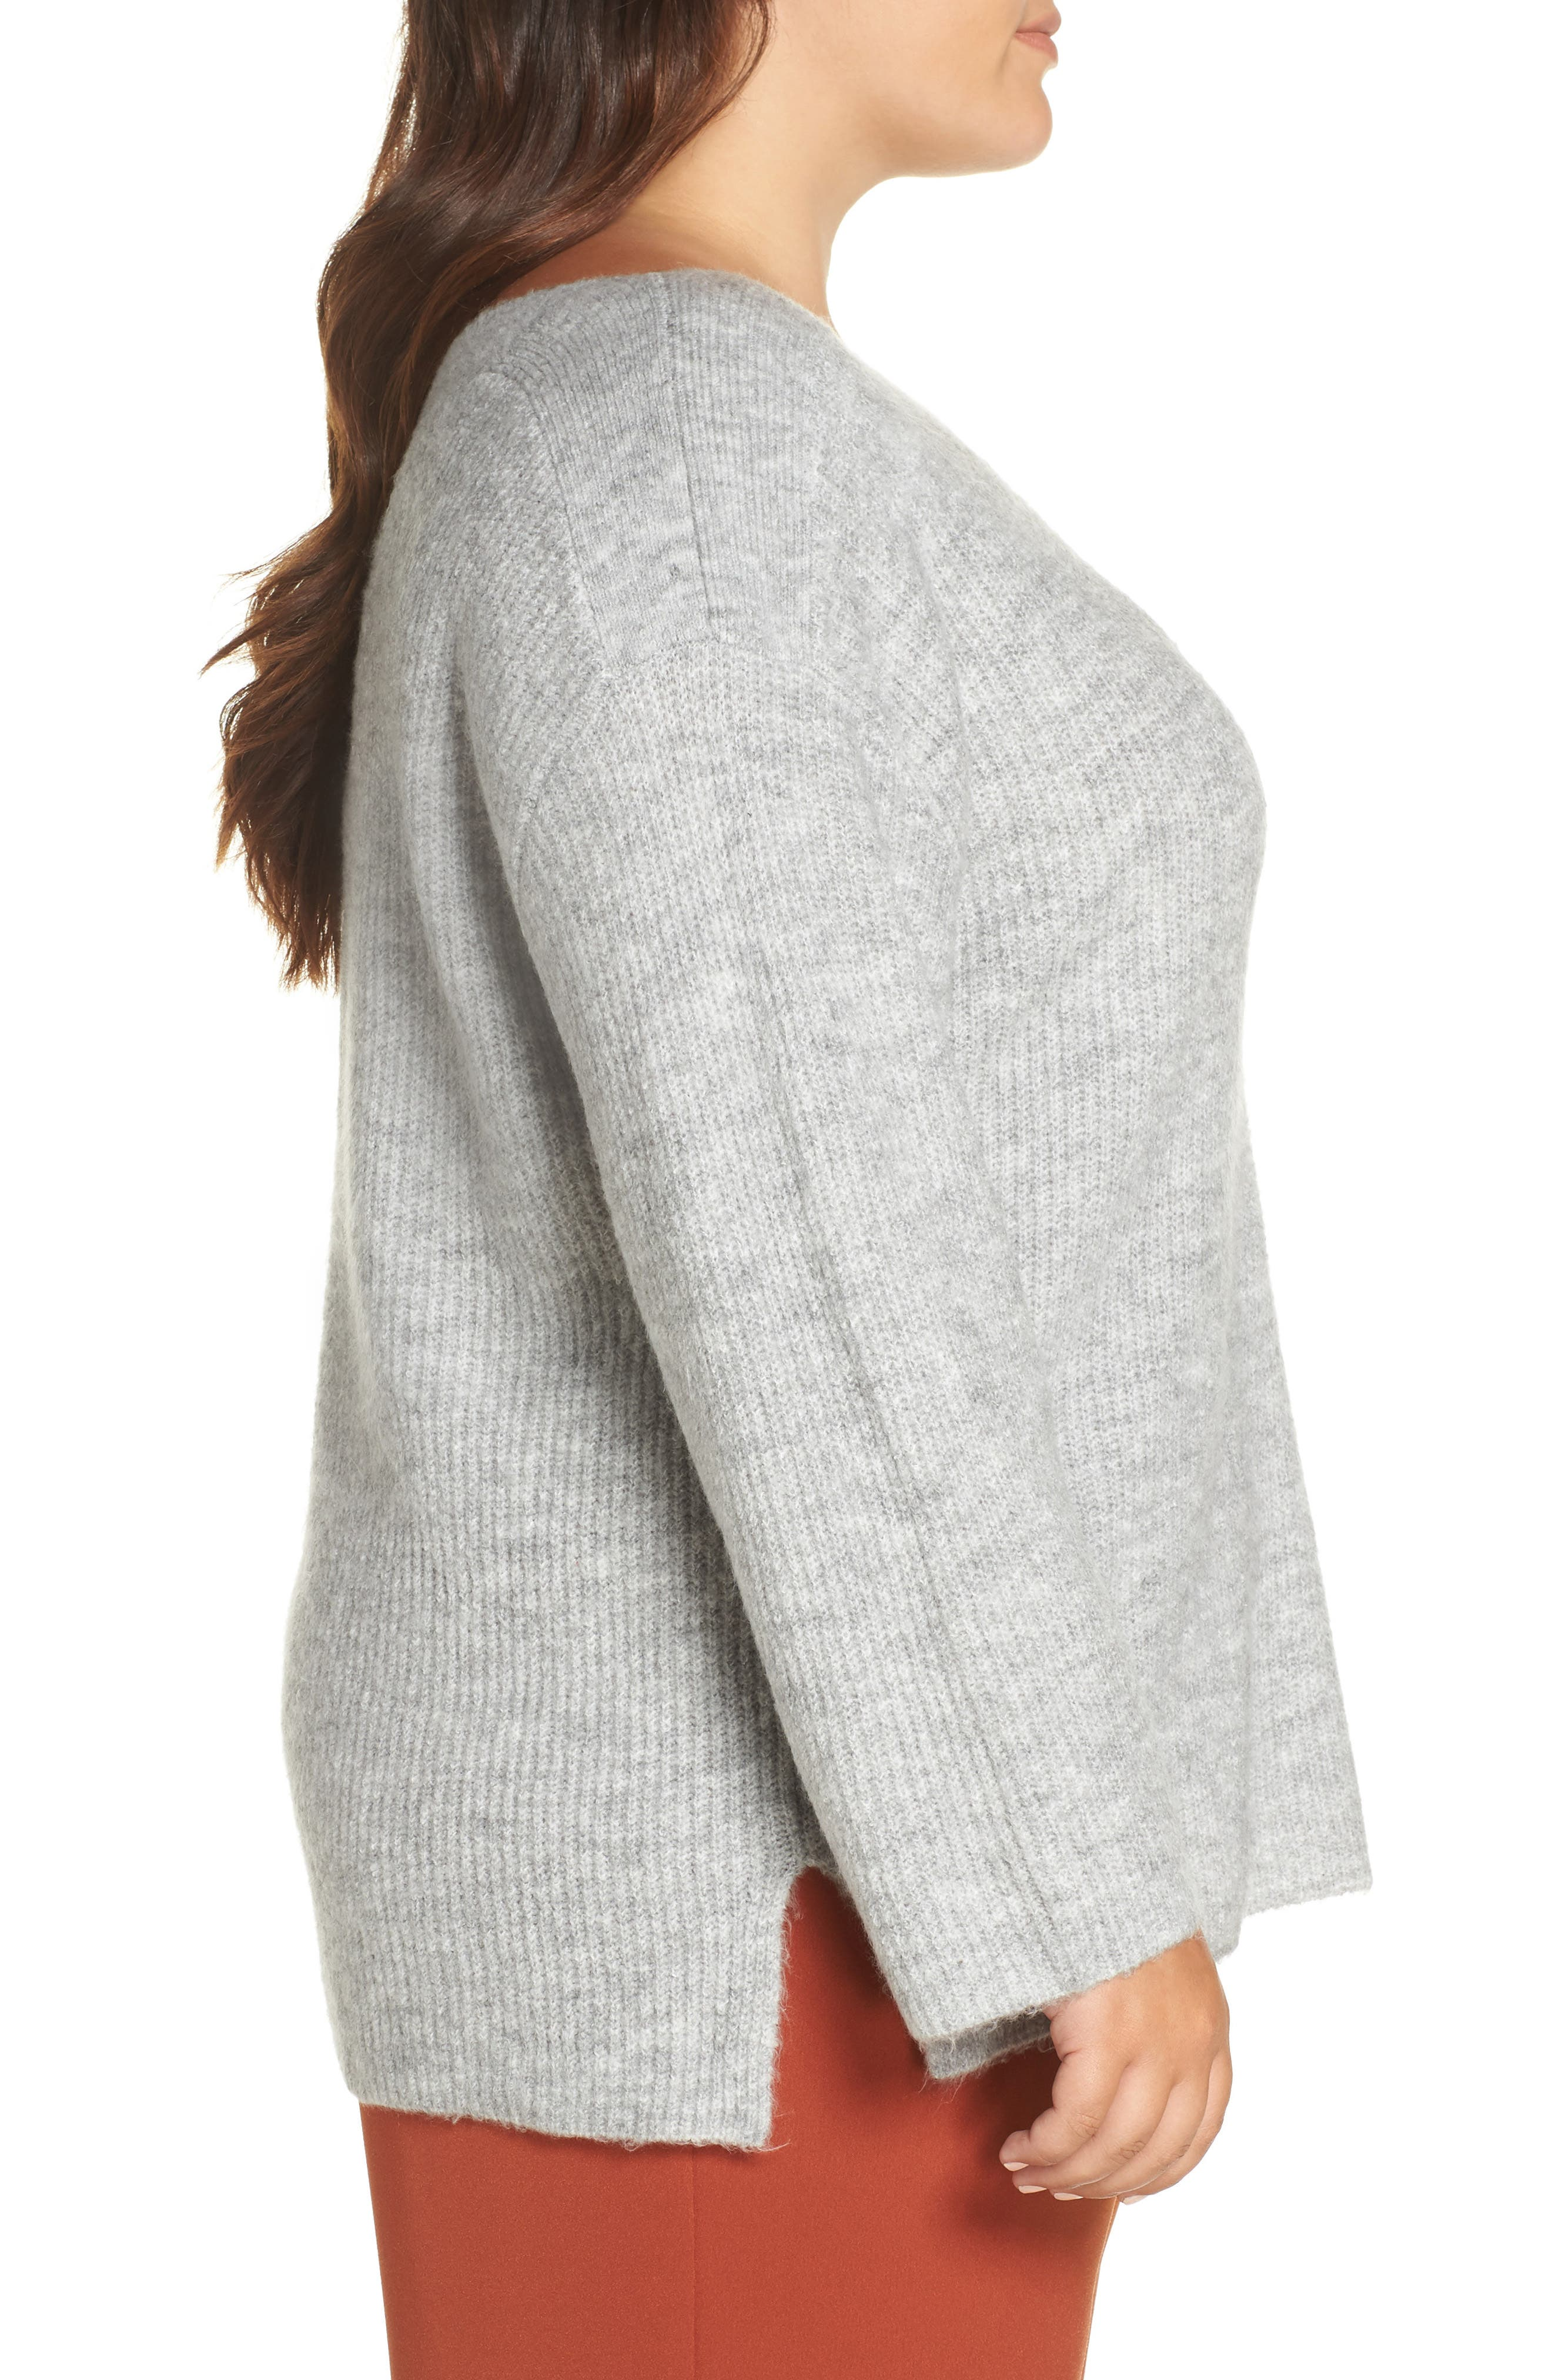 Cozy Femme Pullover Sweater,                             Alternate thumbnail 3, color,                             031